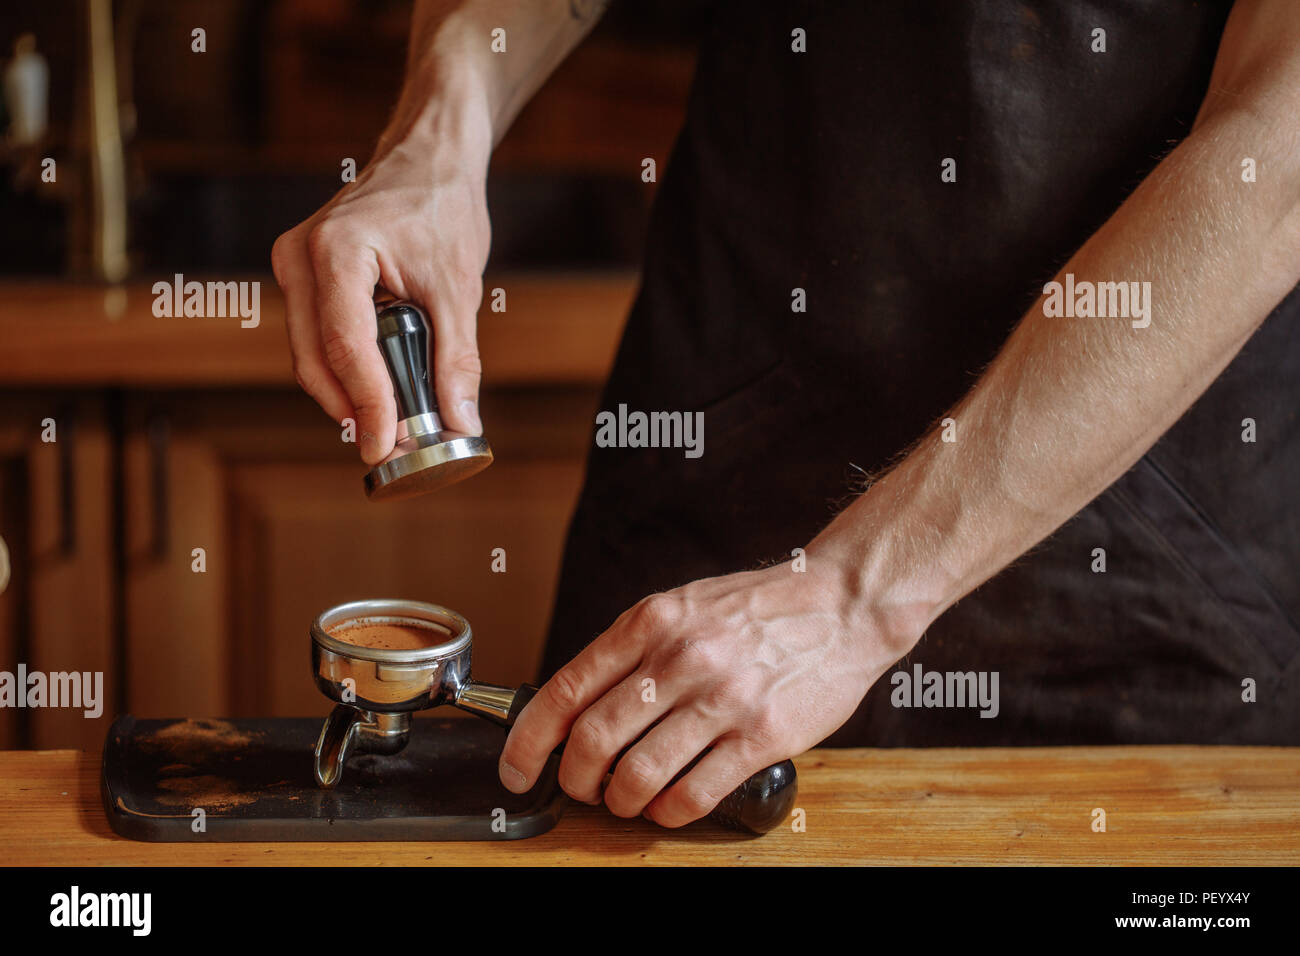 a barista is using a tamper to press coffee seads. close up cropped shot Stock Photo